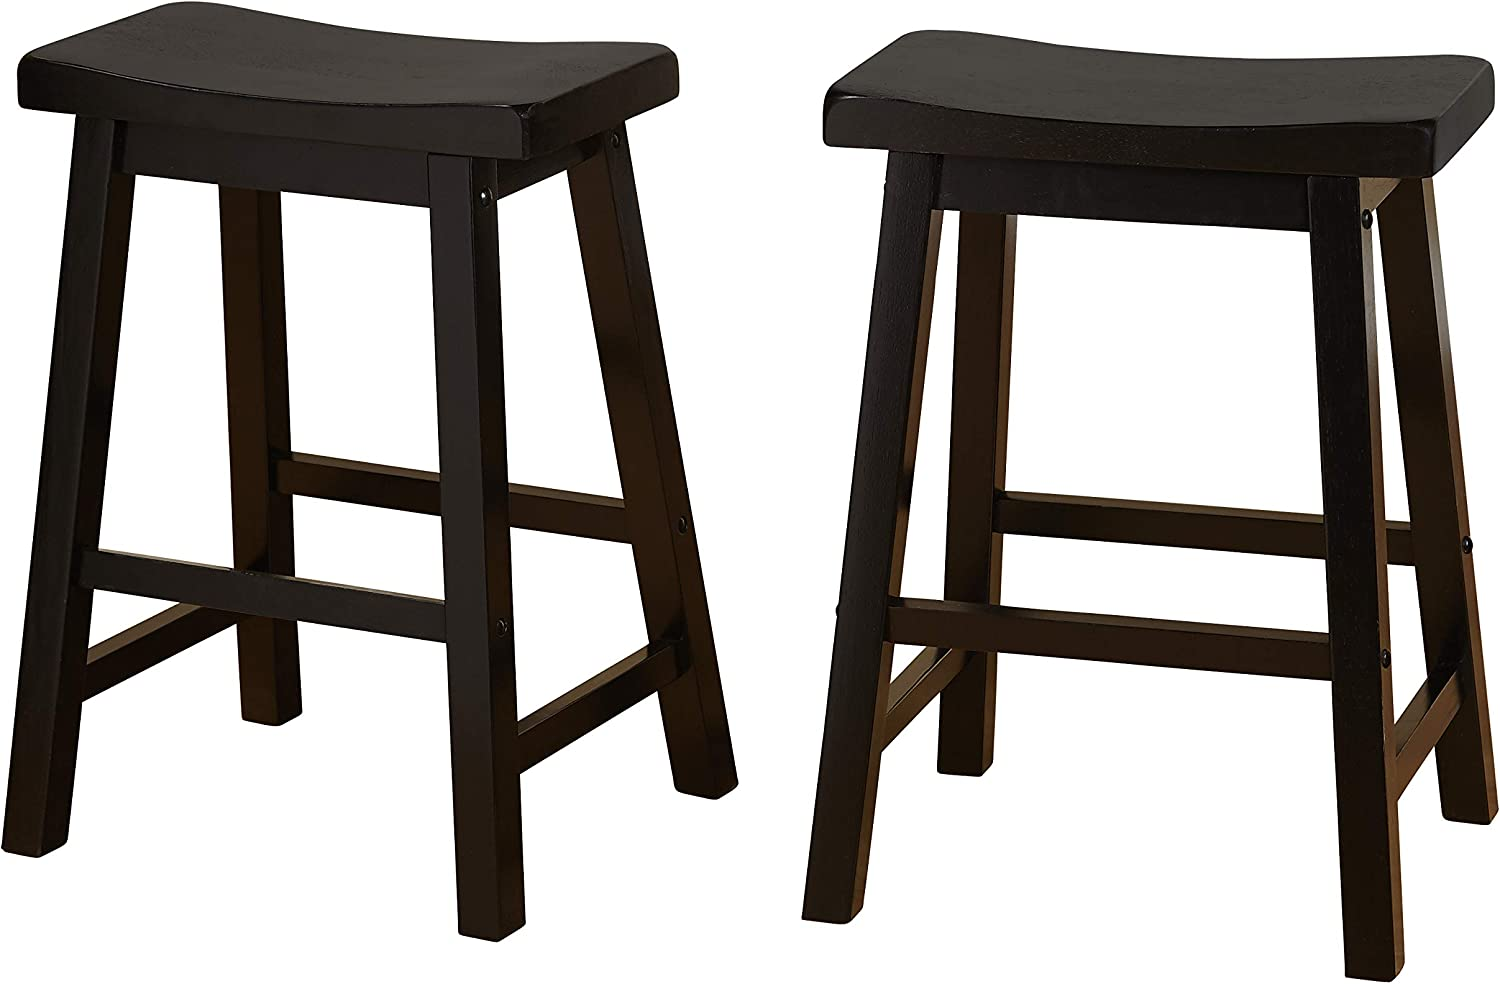 Target Marketing Systems Set of 2 24-Inch Belfast Wooden Saddle Stools, Set of 2, Black